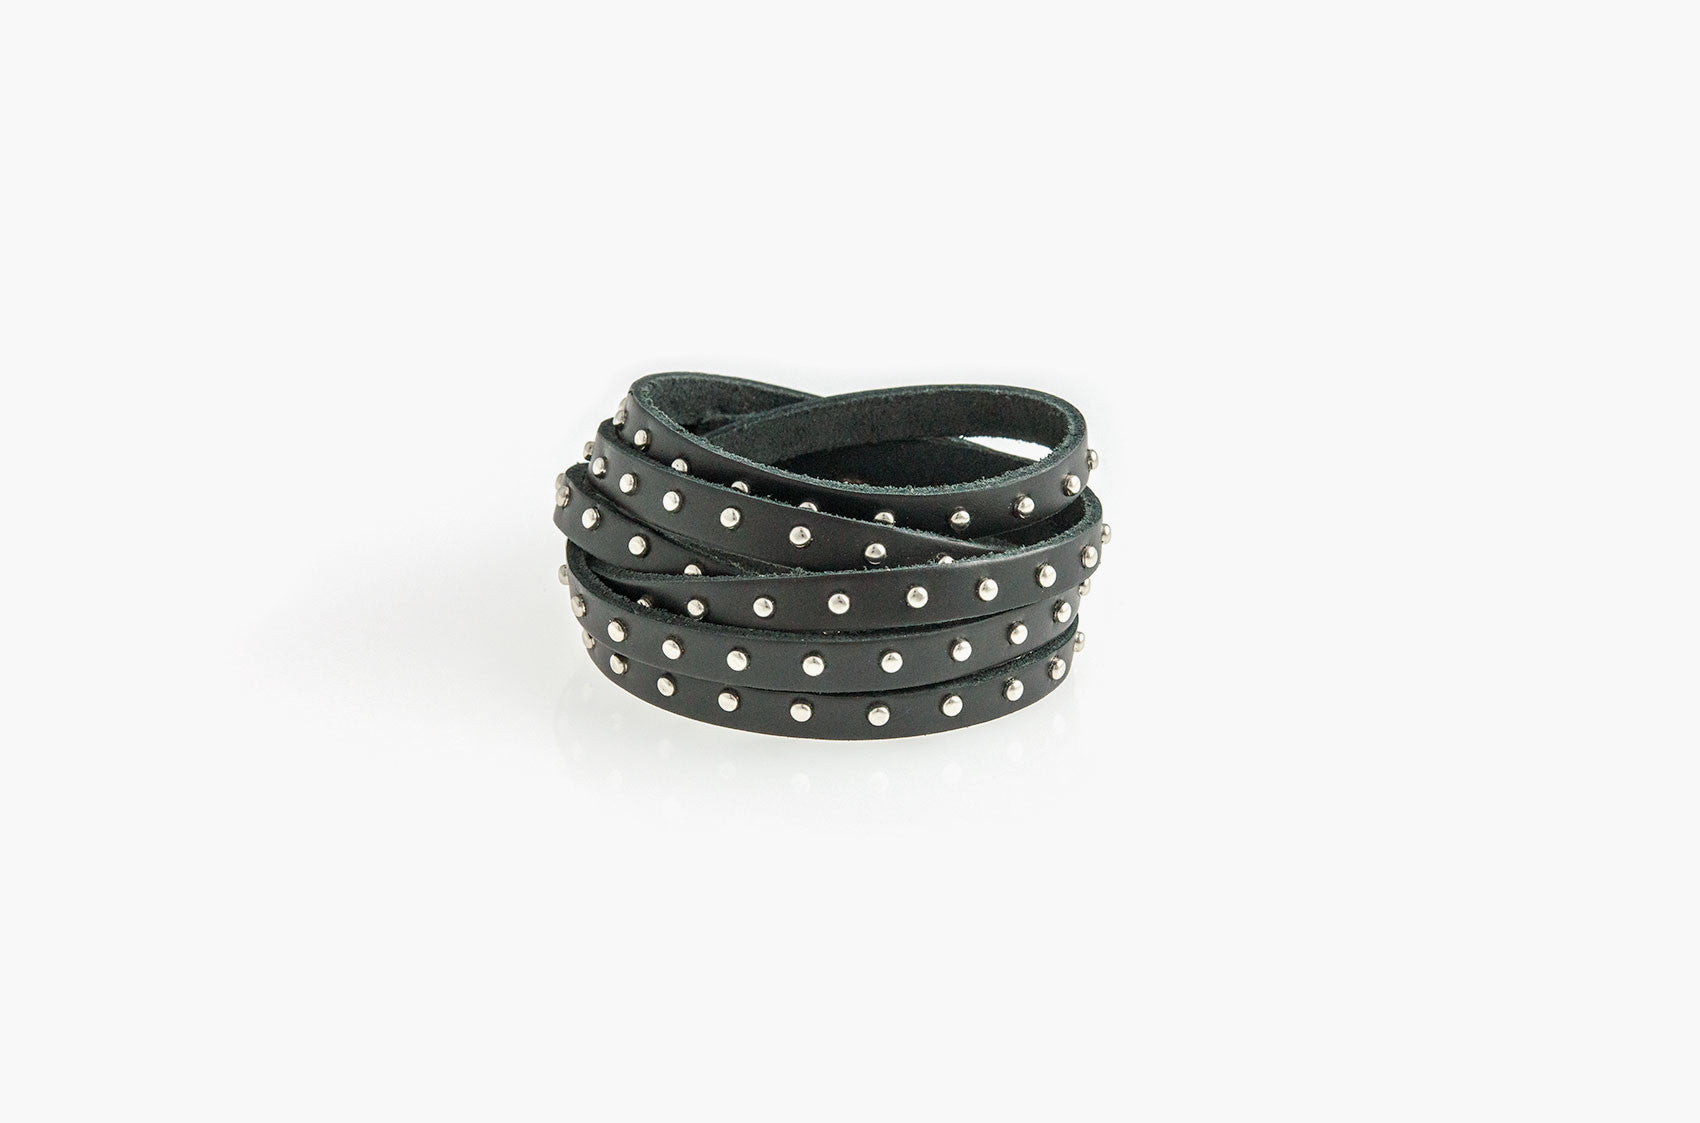 Black leather and studs wrap bracelet